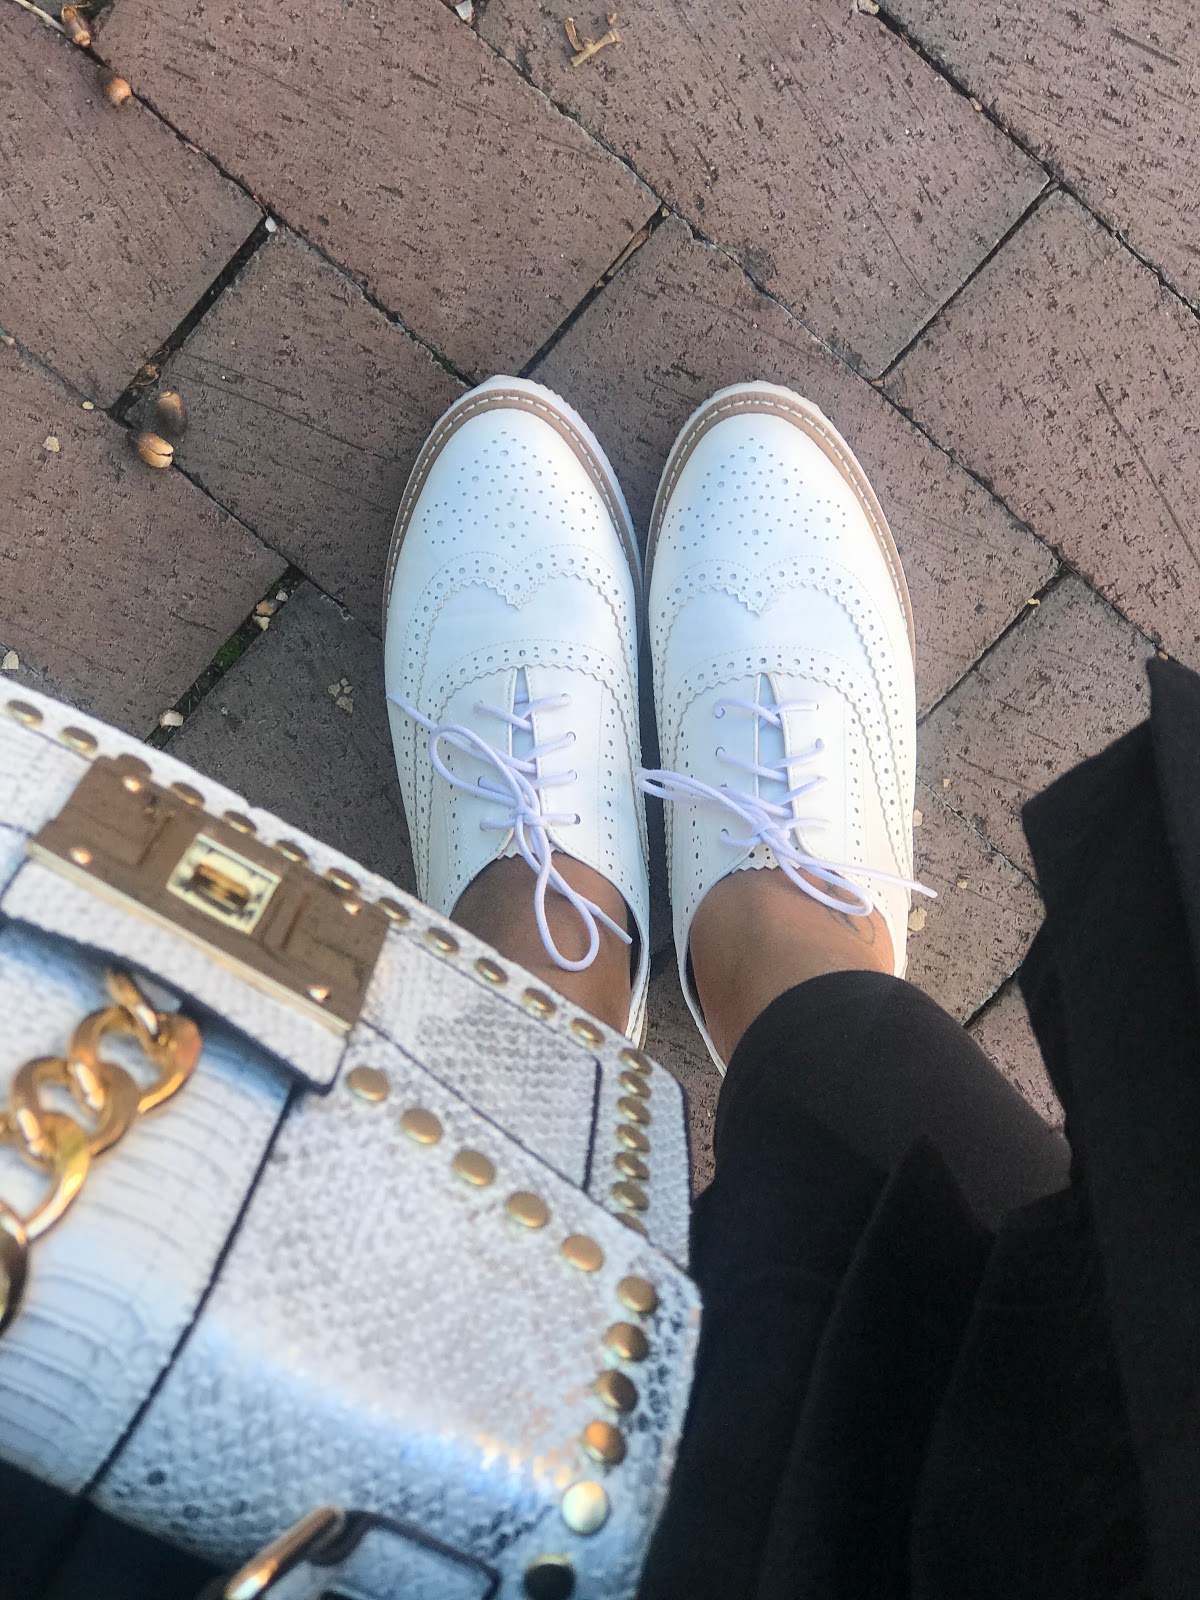 4 Reasons Why I Love Wearing Men Style Shoes: The Shoe Chat! Judge My Style Image: White Oxford shoes and white and gold handbag